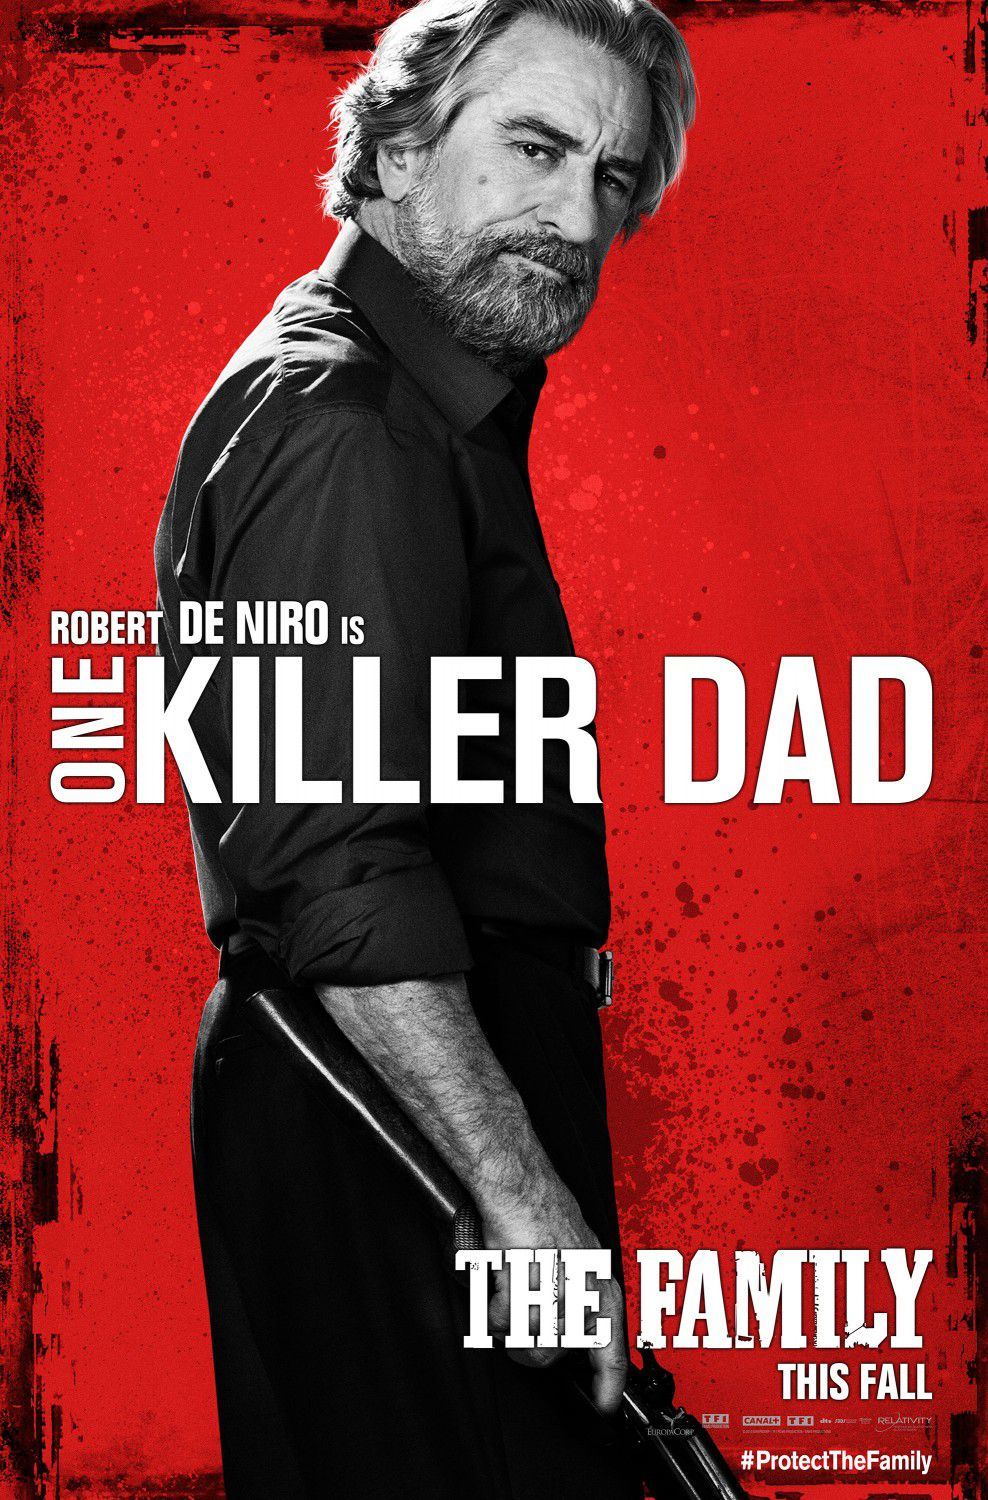 Cose nostre - Malavita - the Family - Robert DeNiro - one Killer Dad poster